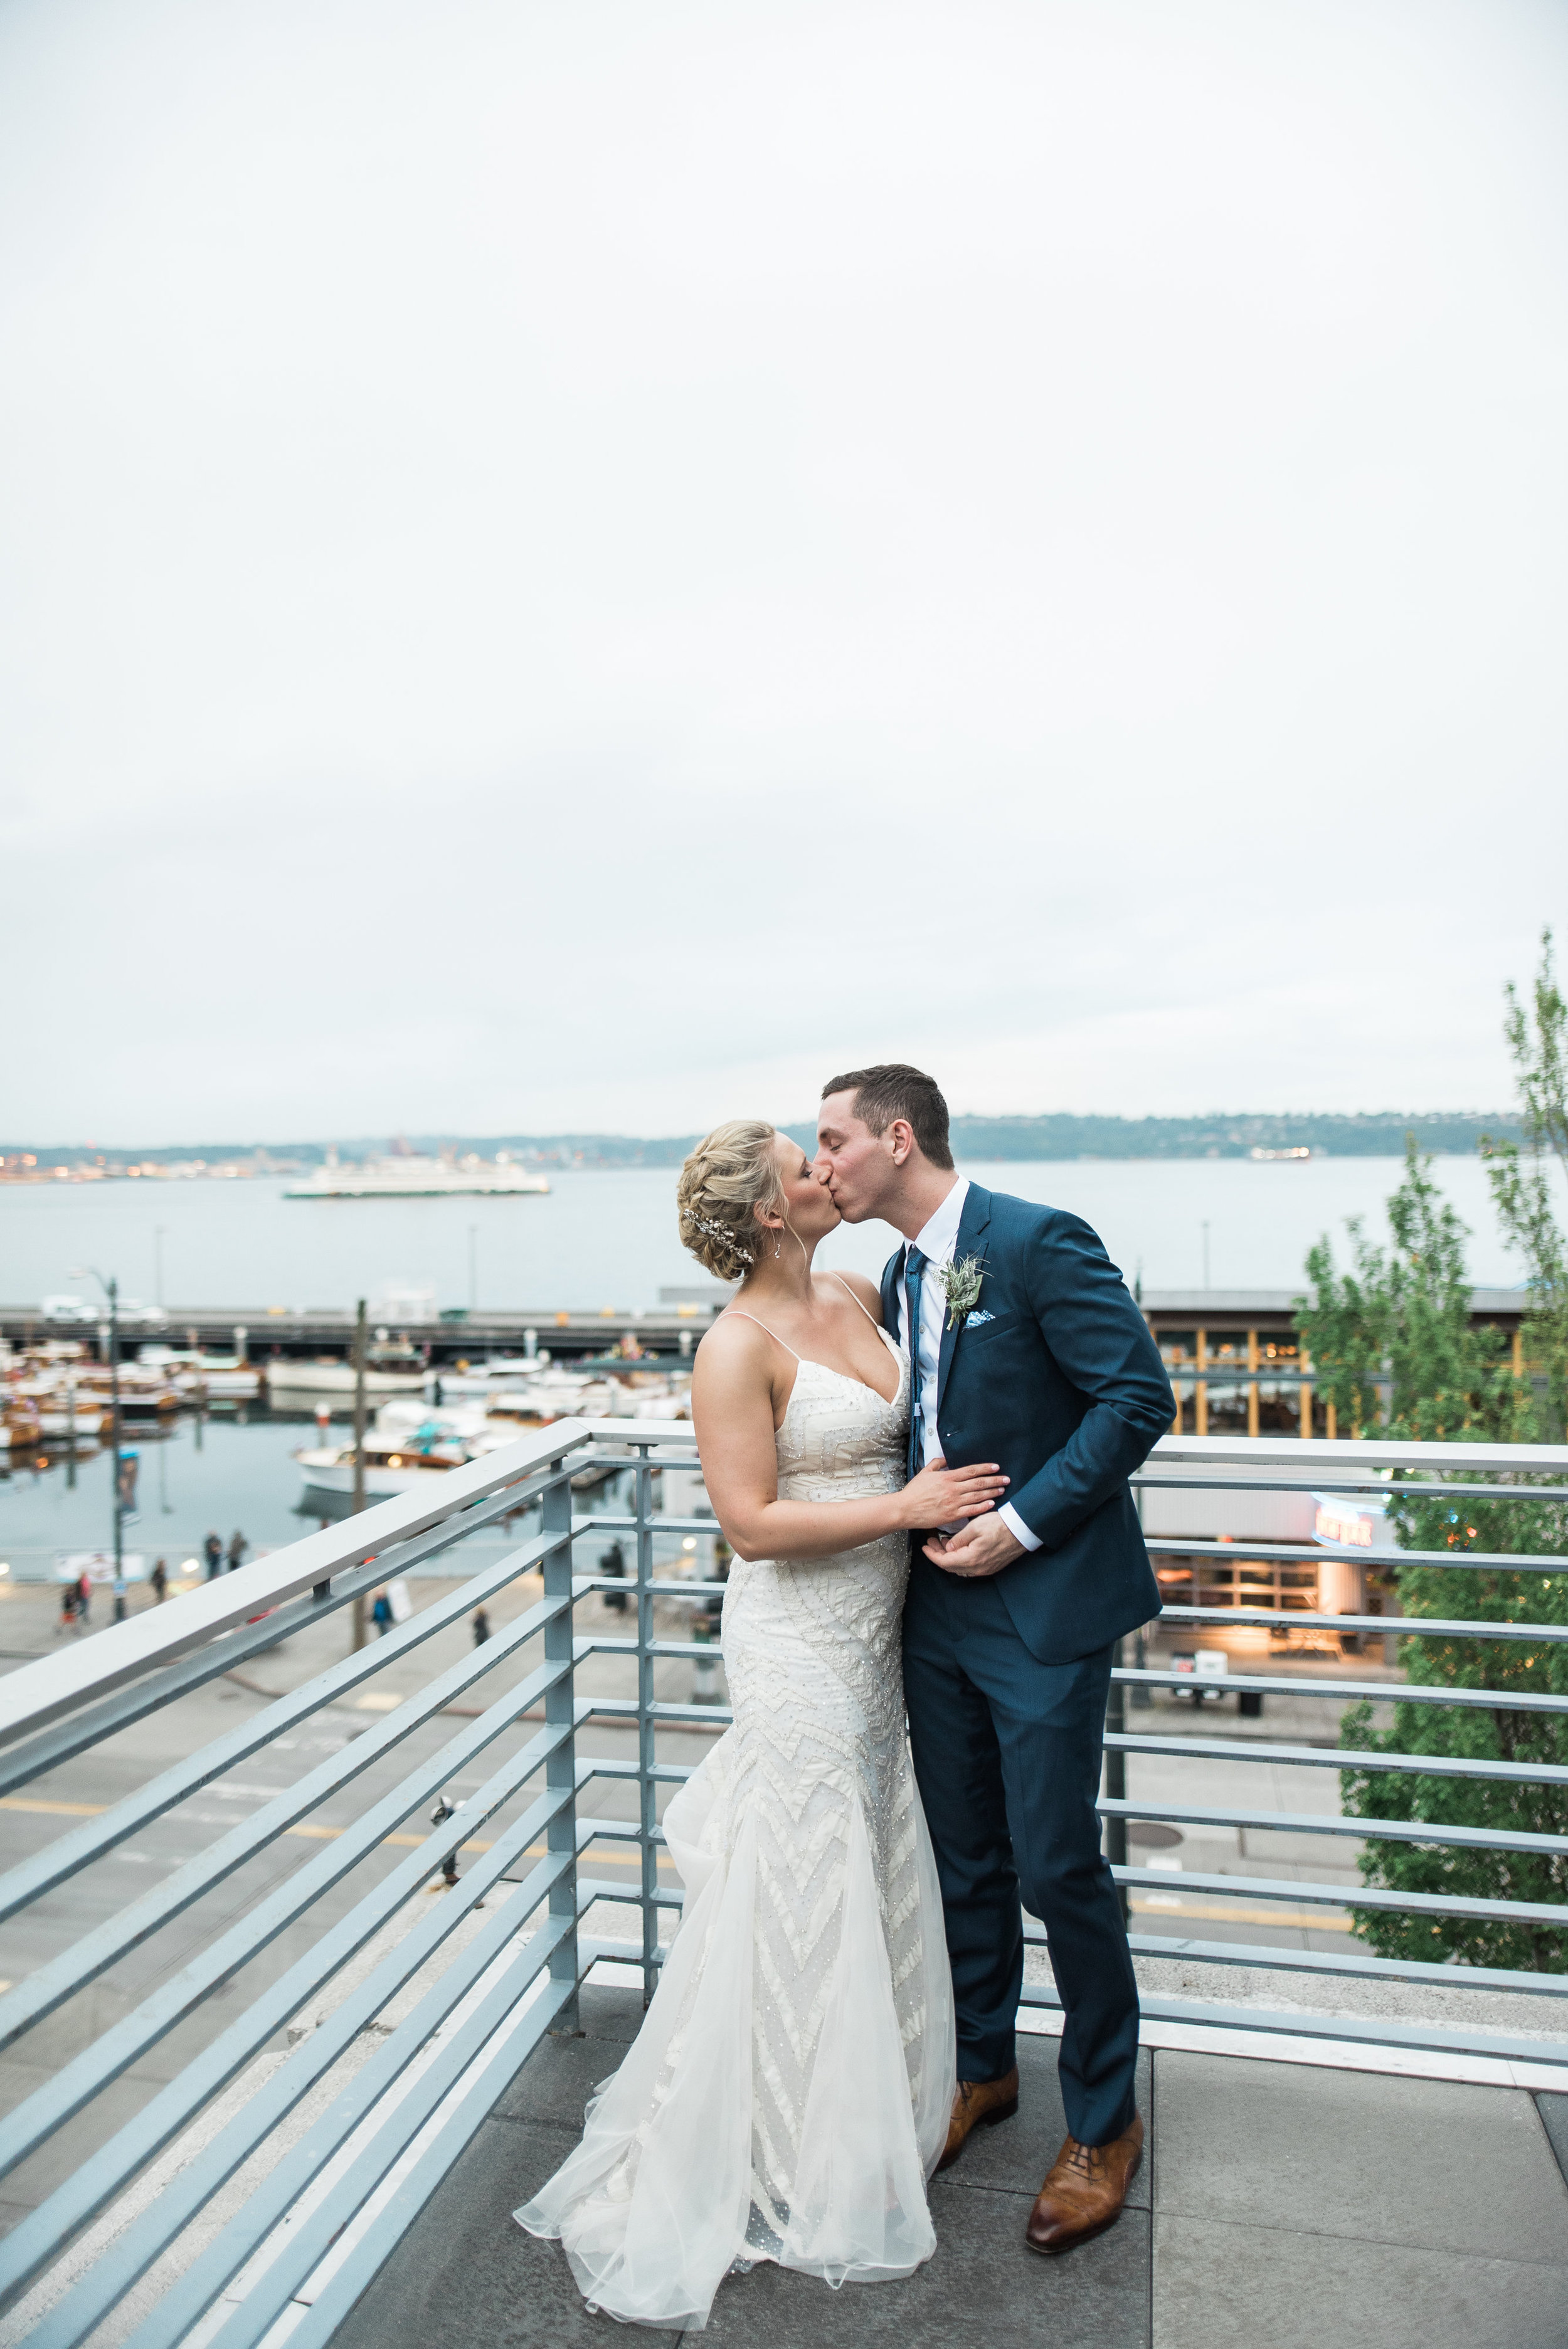 Copy of Our Wedding